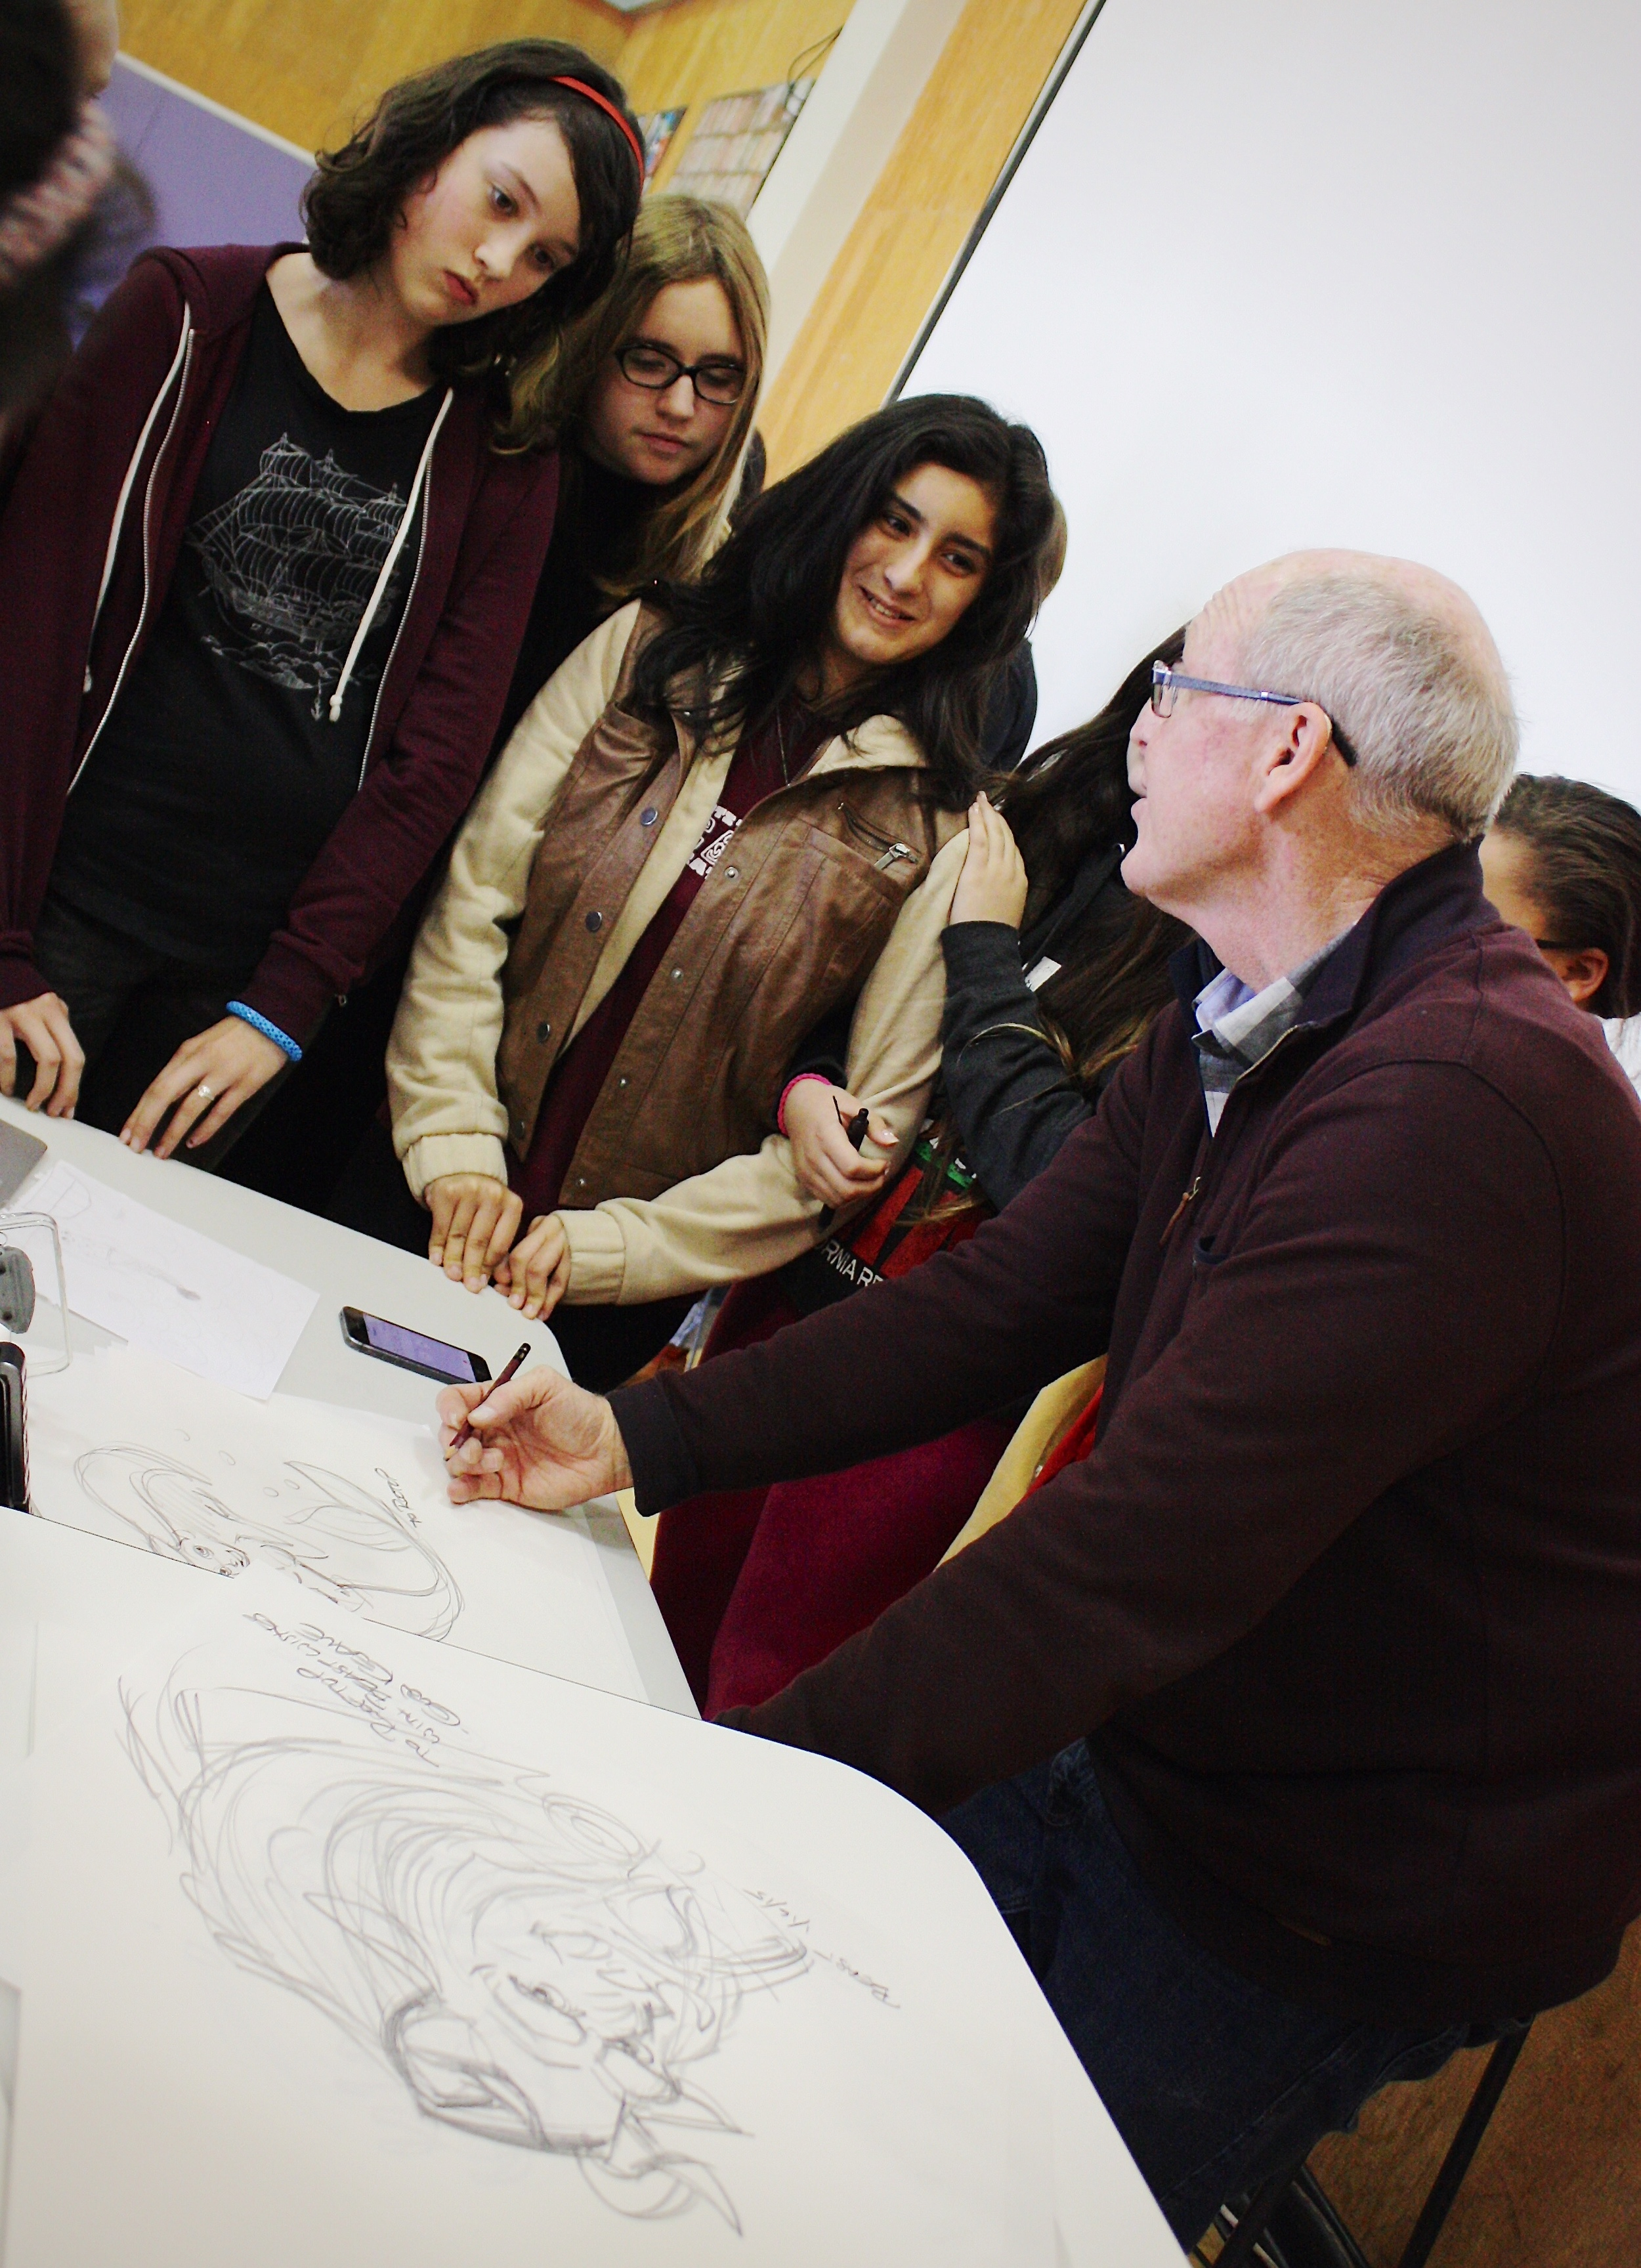 Keane speakingwith students one-on-oneafter his live drawing demonstration. Photo by Keith Zwölfer.